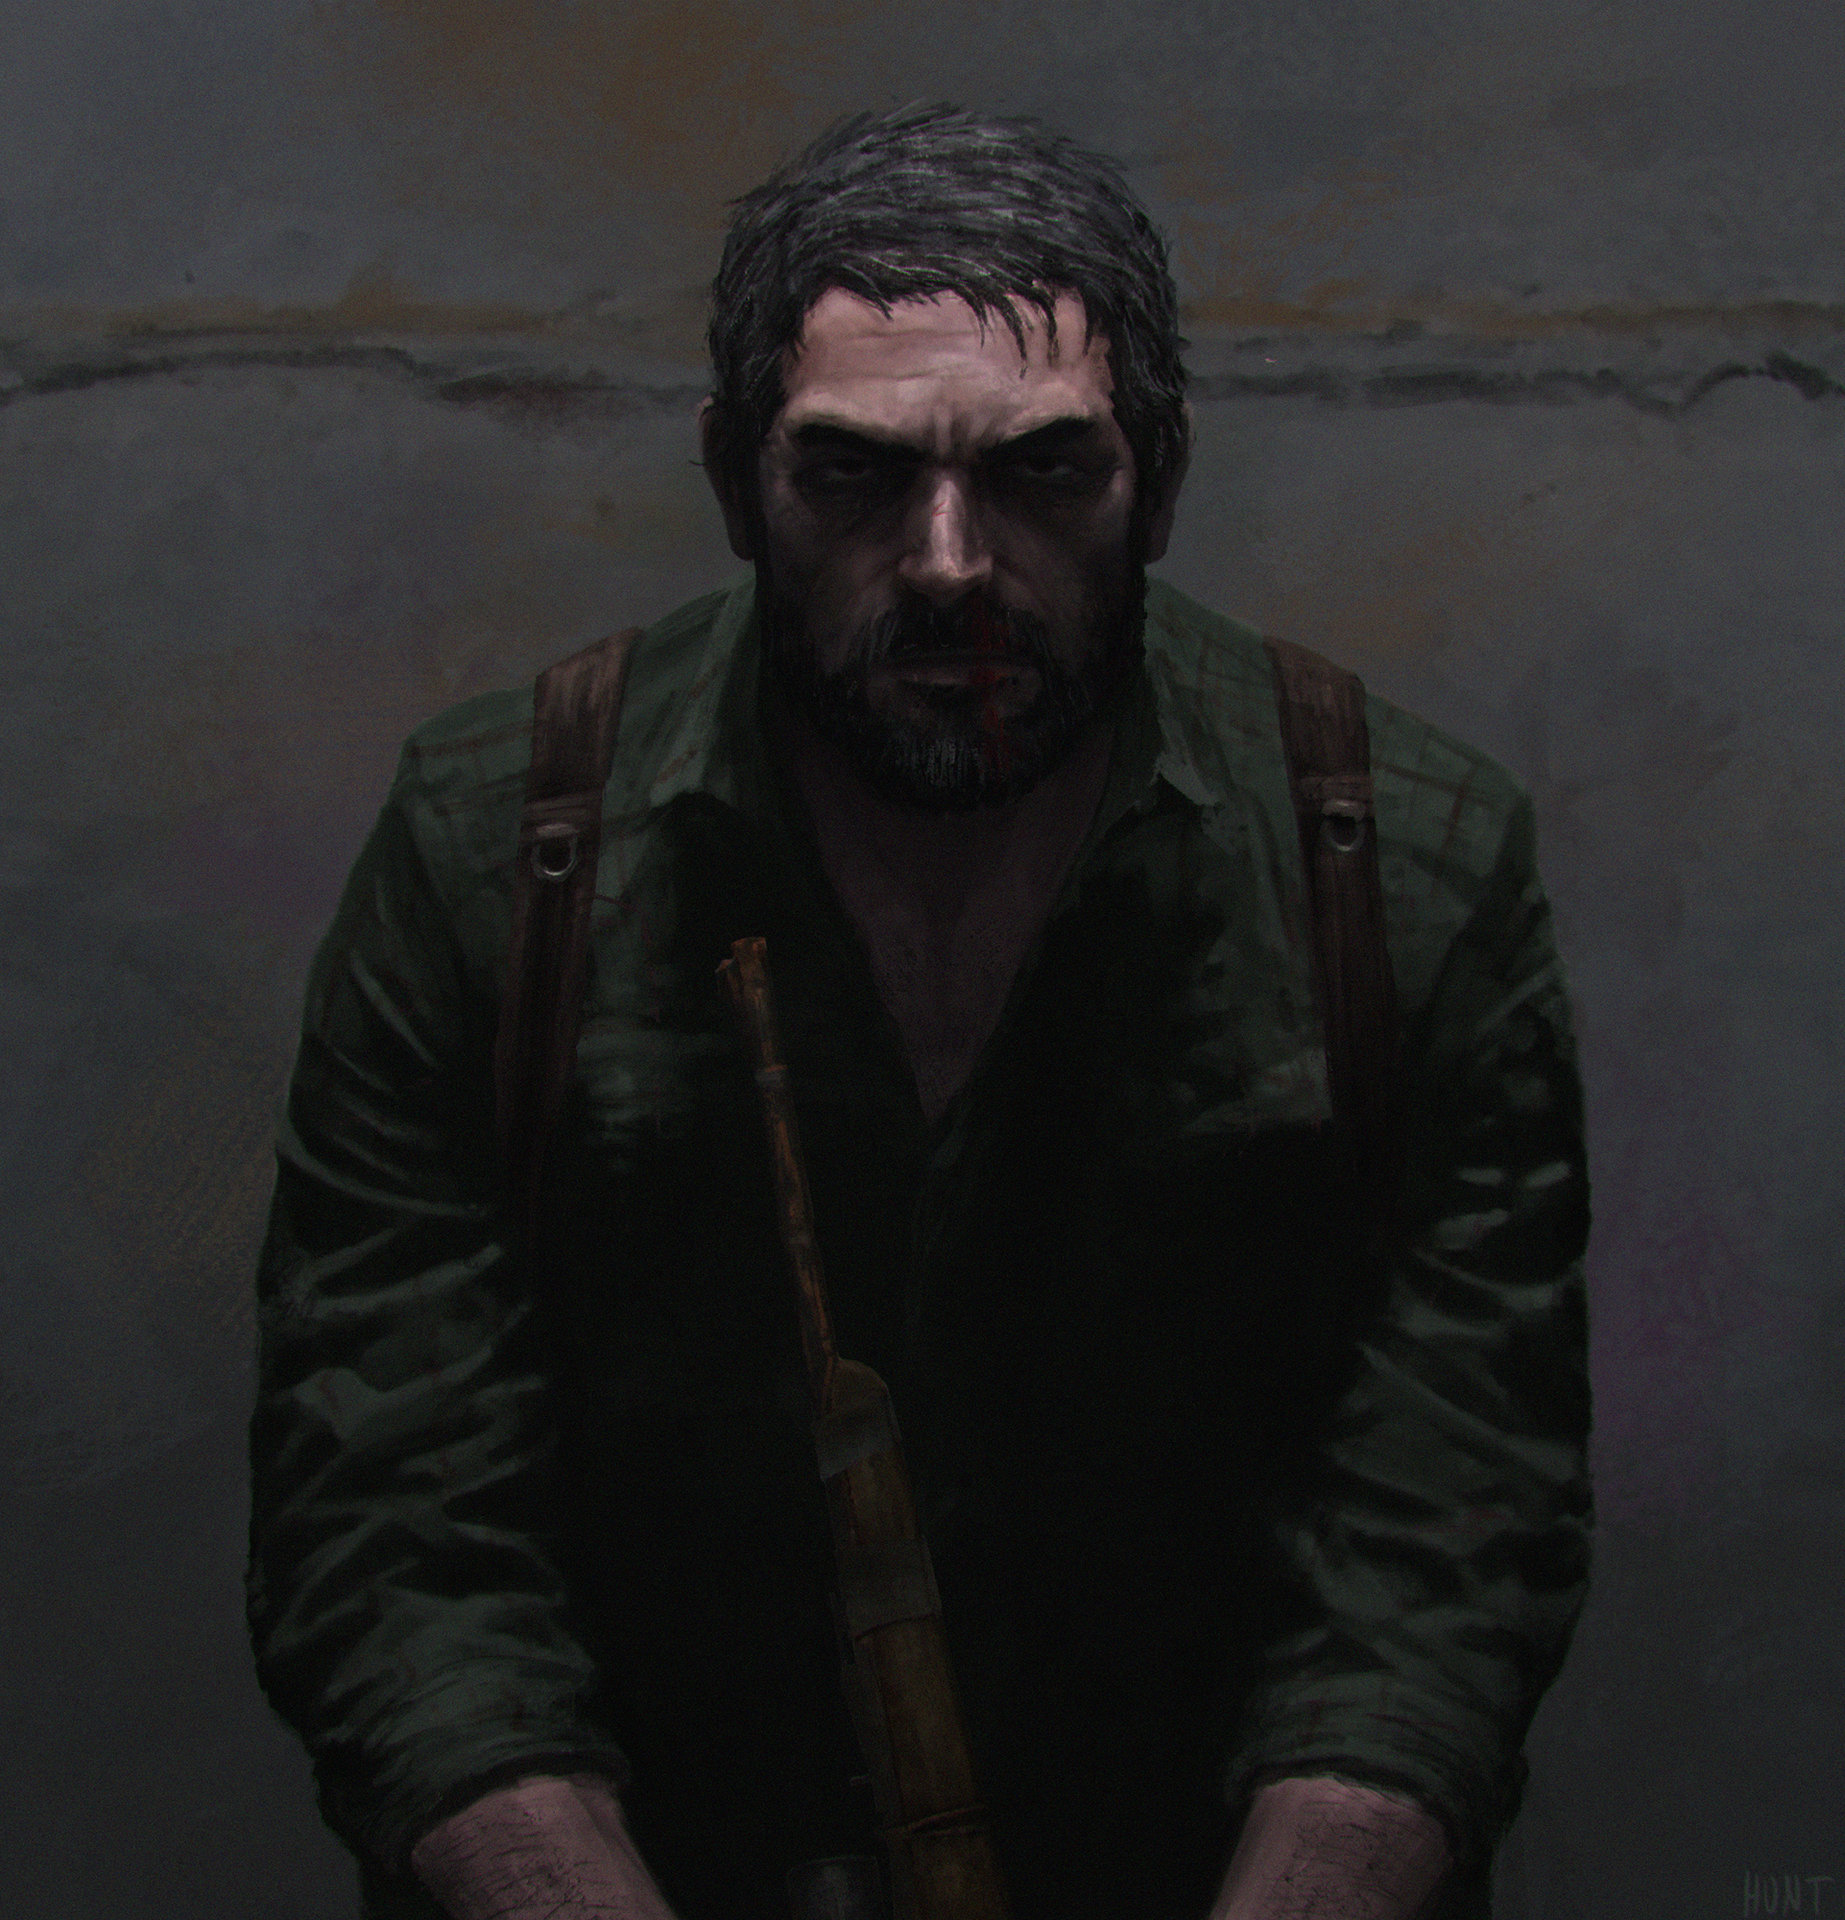 Joel from the Last of Us